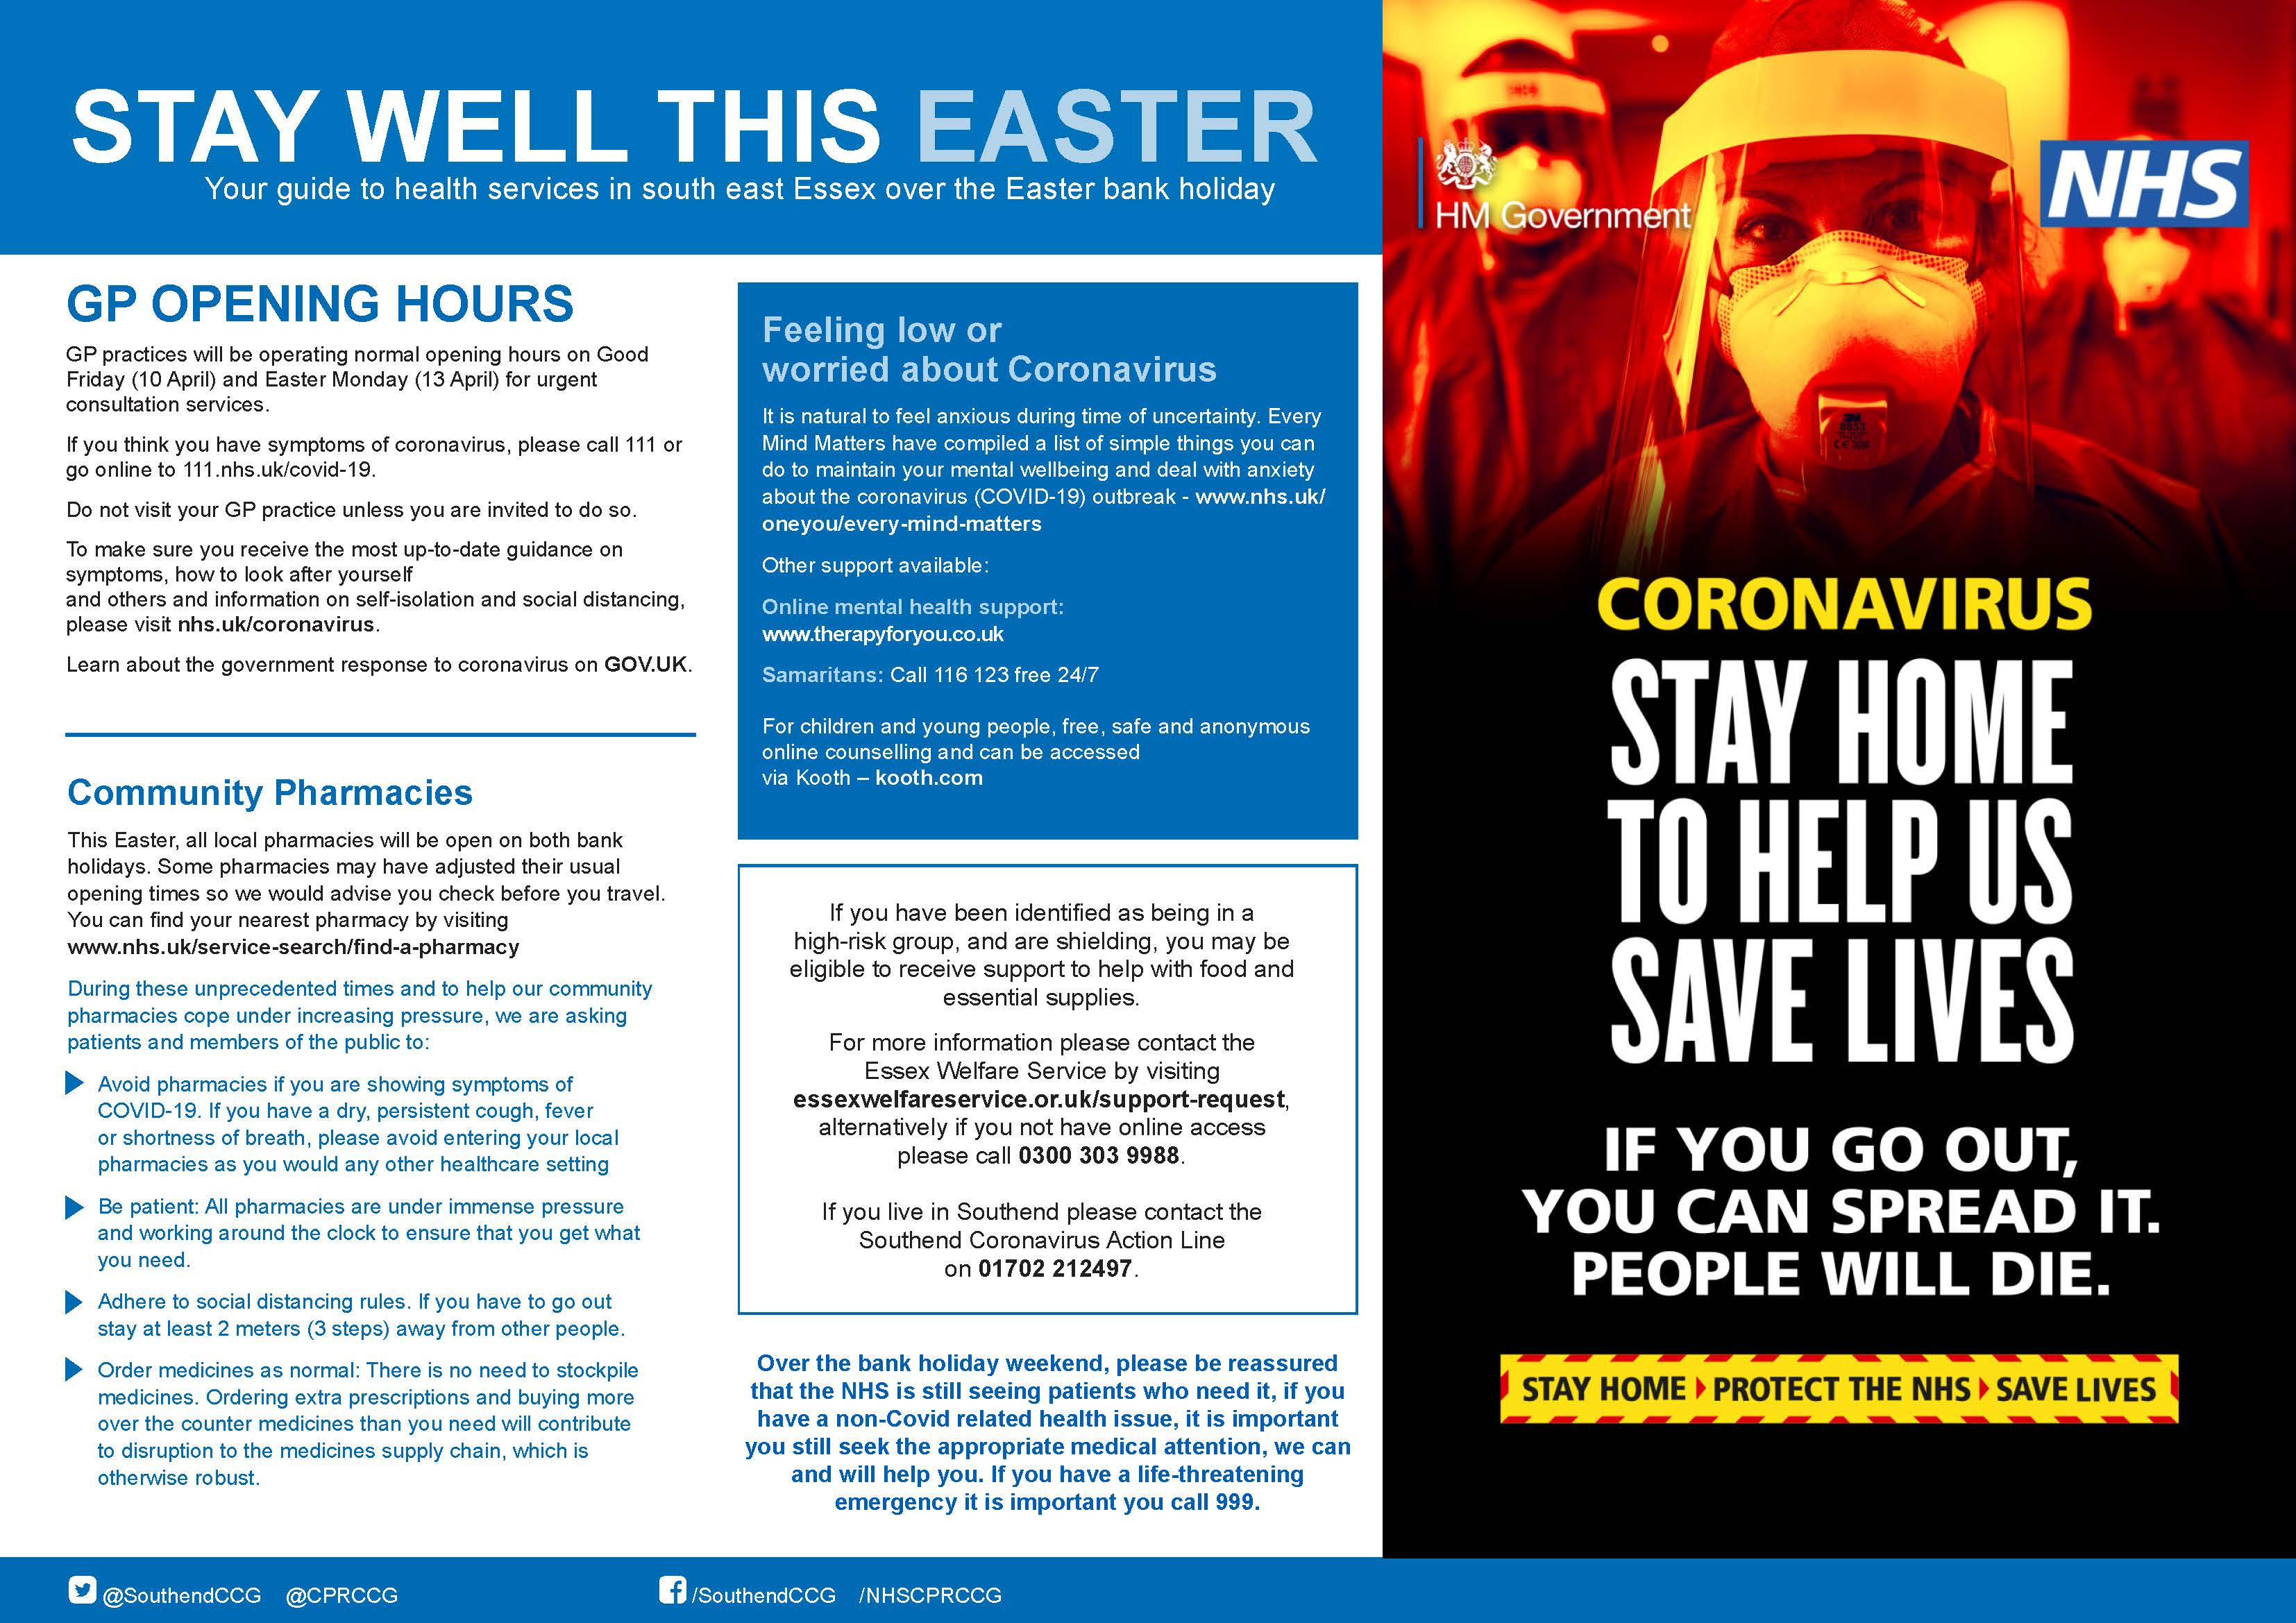 Stay well this easter 2020 posters South East Essex